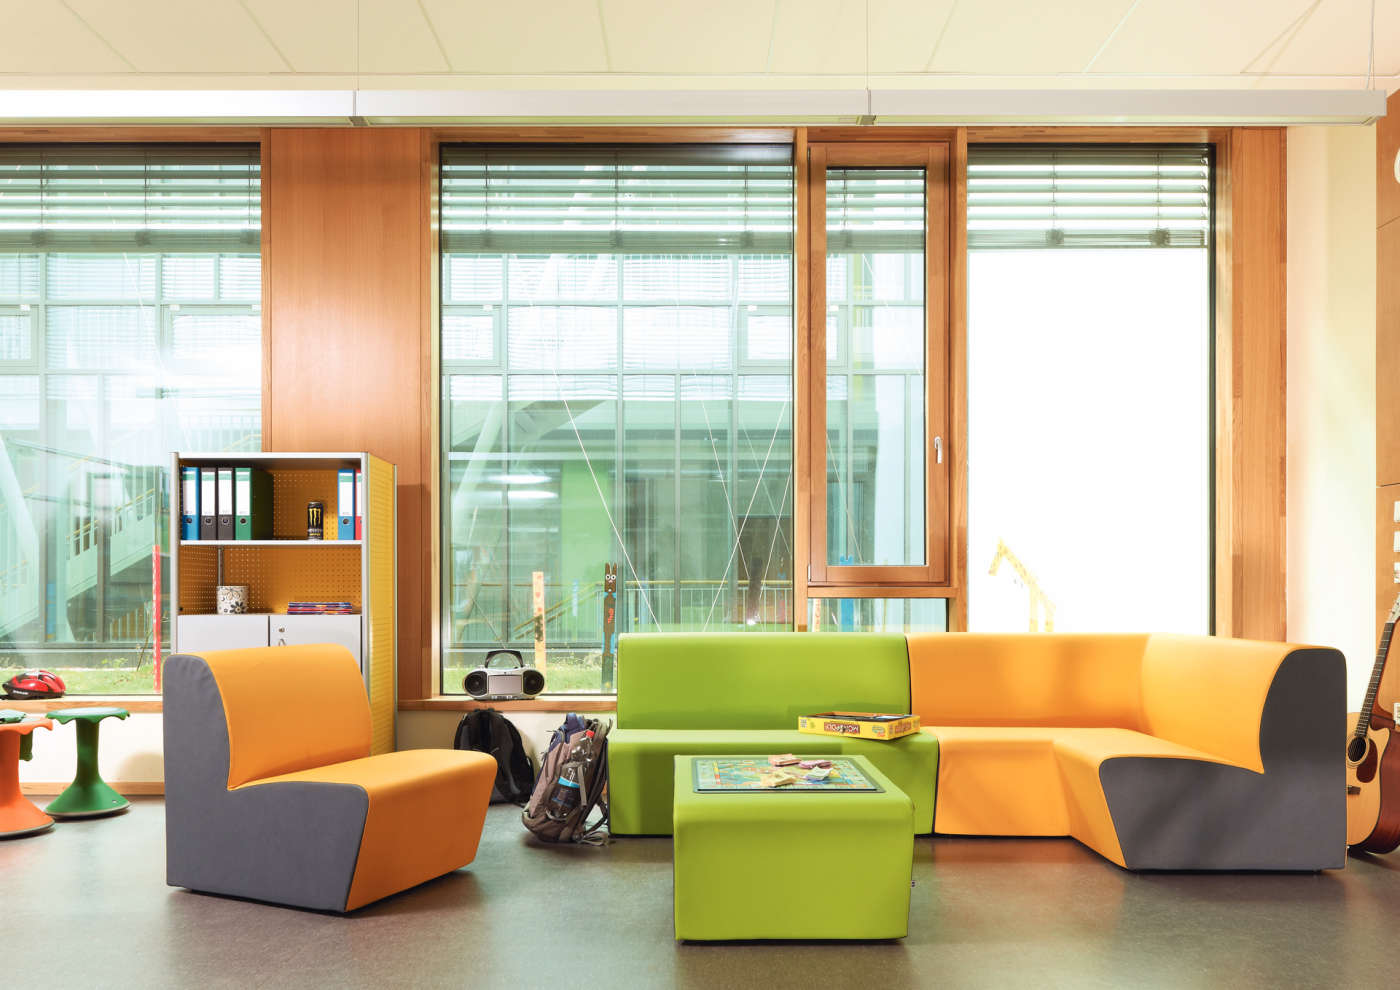 VS School Furniture For The School Living Space